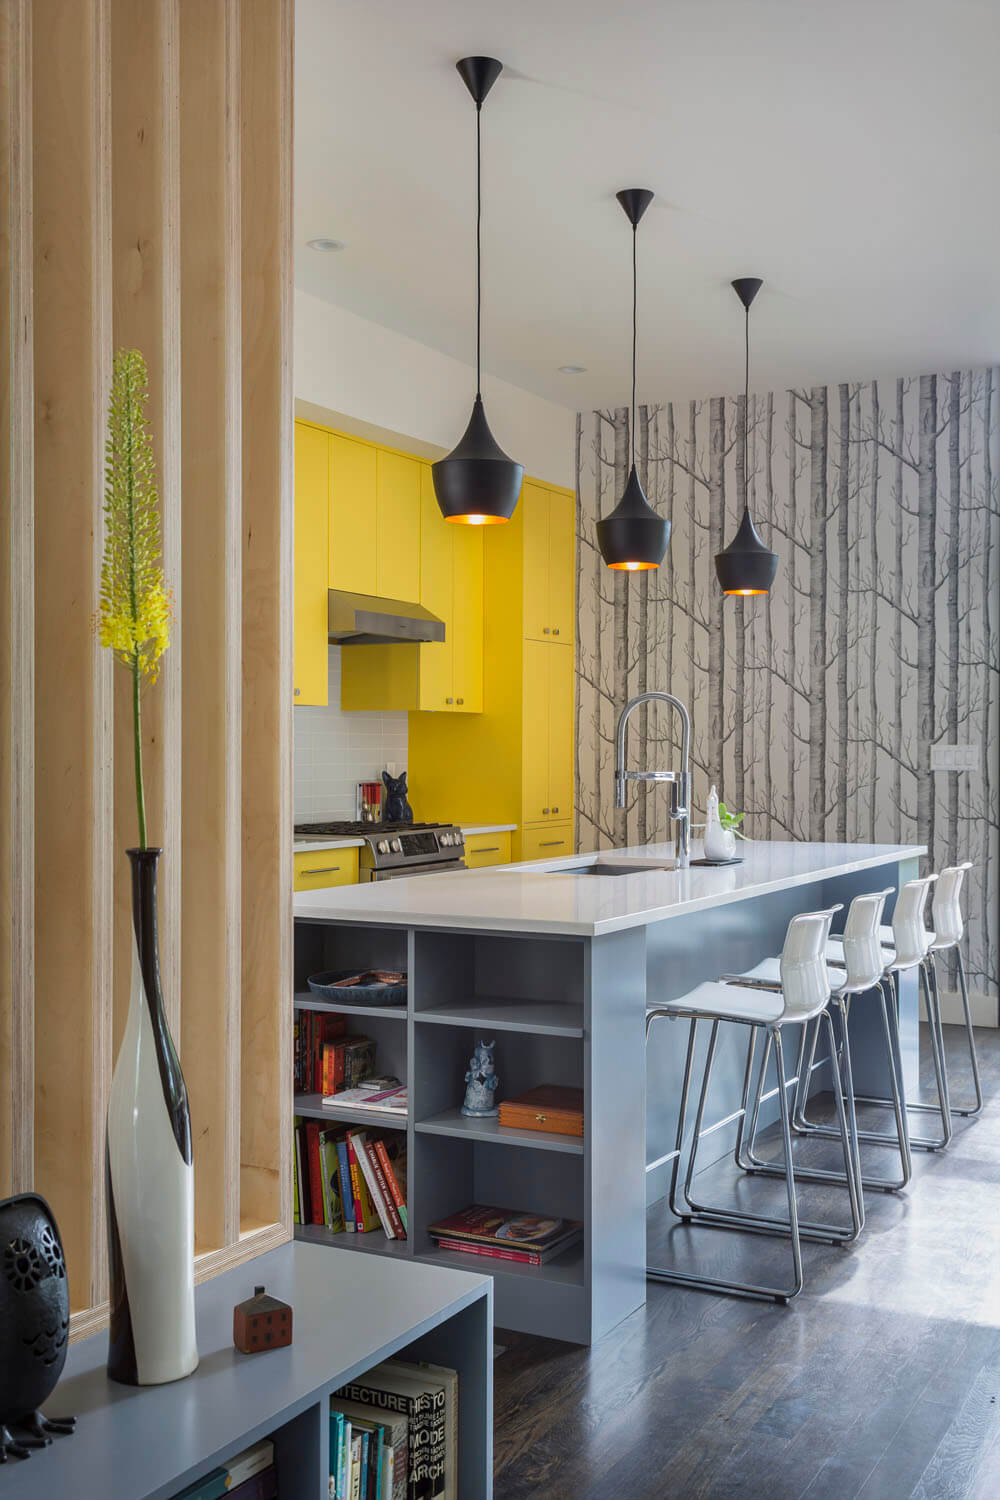 Bright Interior Design Ideas for Private House. Black contrasting chandeliers over the kitchen island